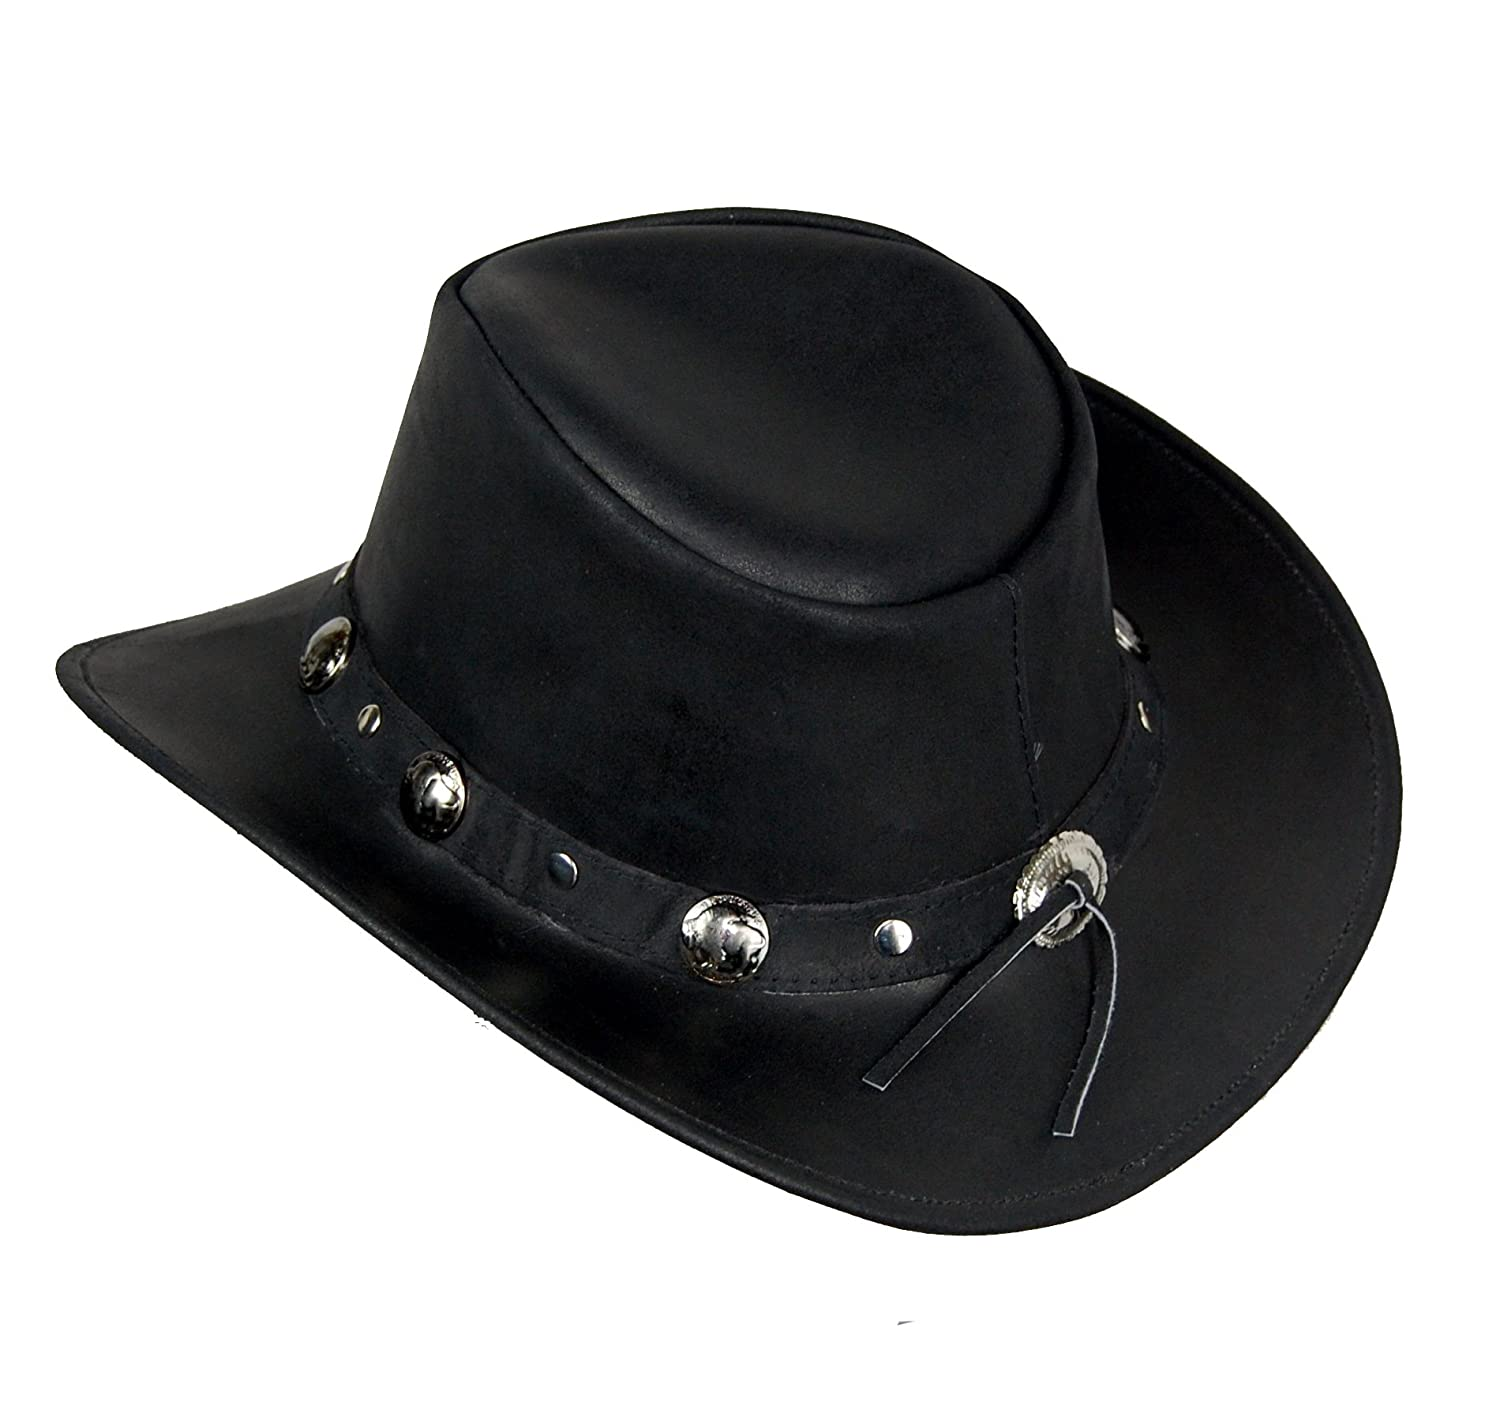 Cowboy Western Style Leather Hat Black Quality Leather Hat